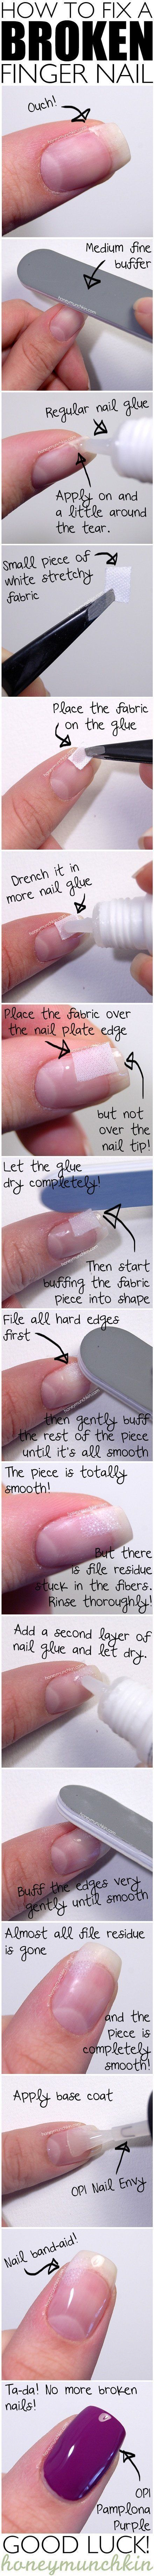 14 Clever Hacks That Will Change Your Beauty Routine For The Better